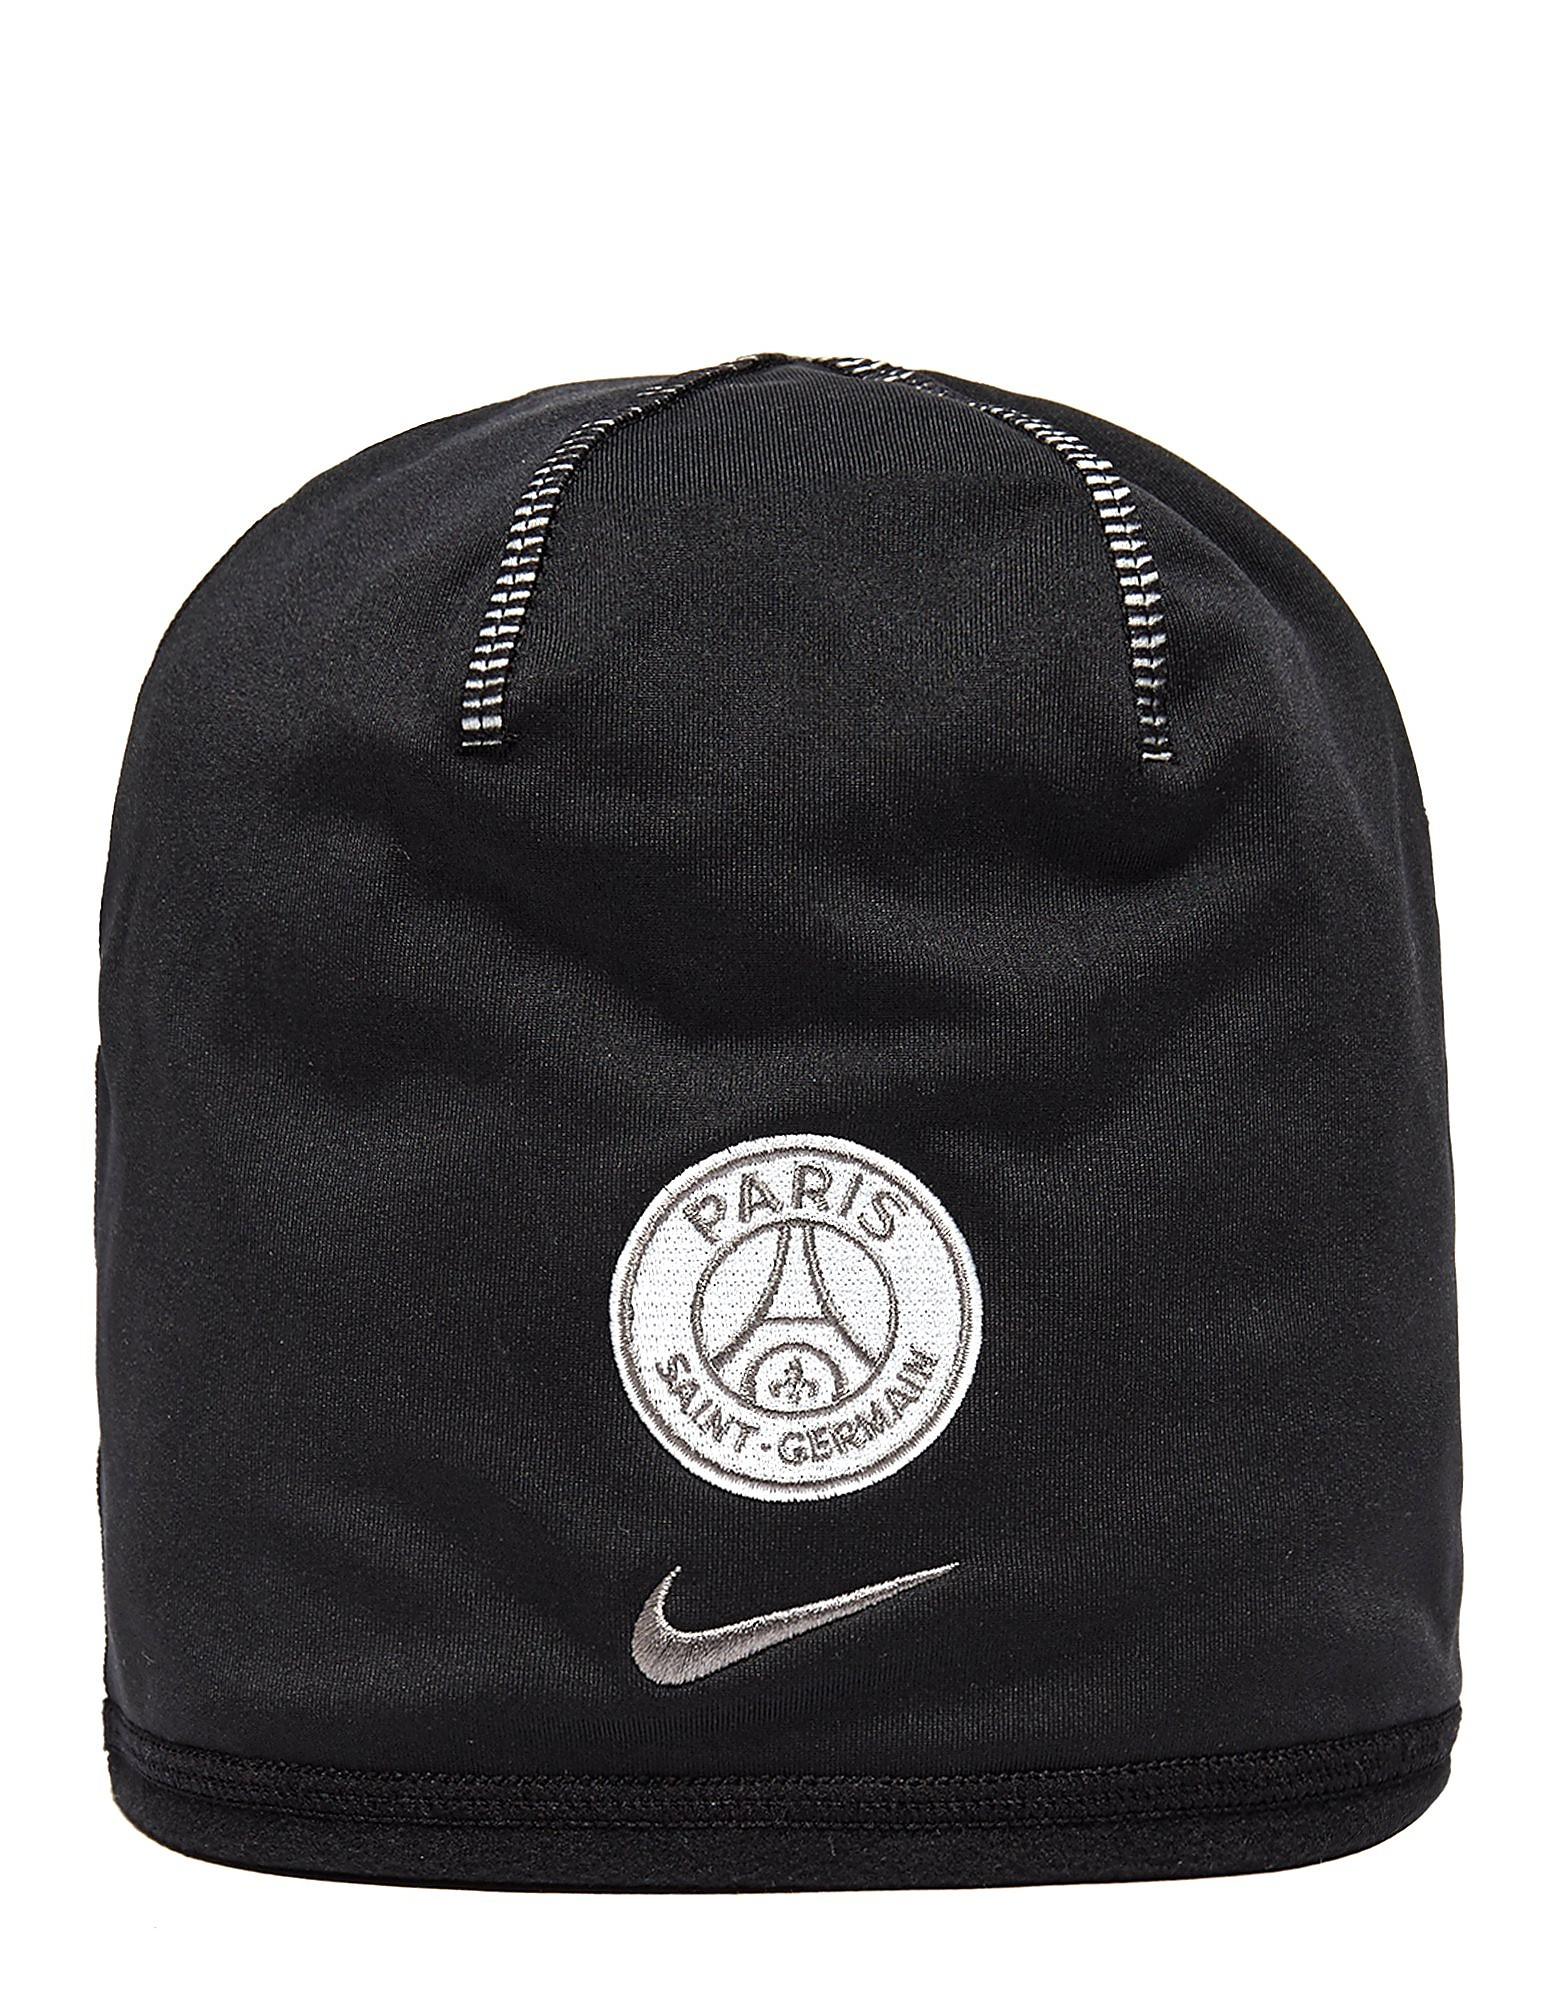 Nike Bonnet avec écusson du Paris Saint-Germain